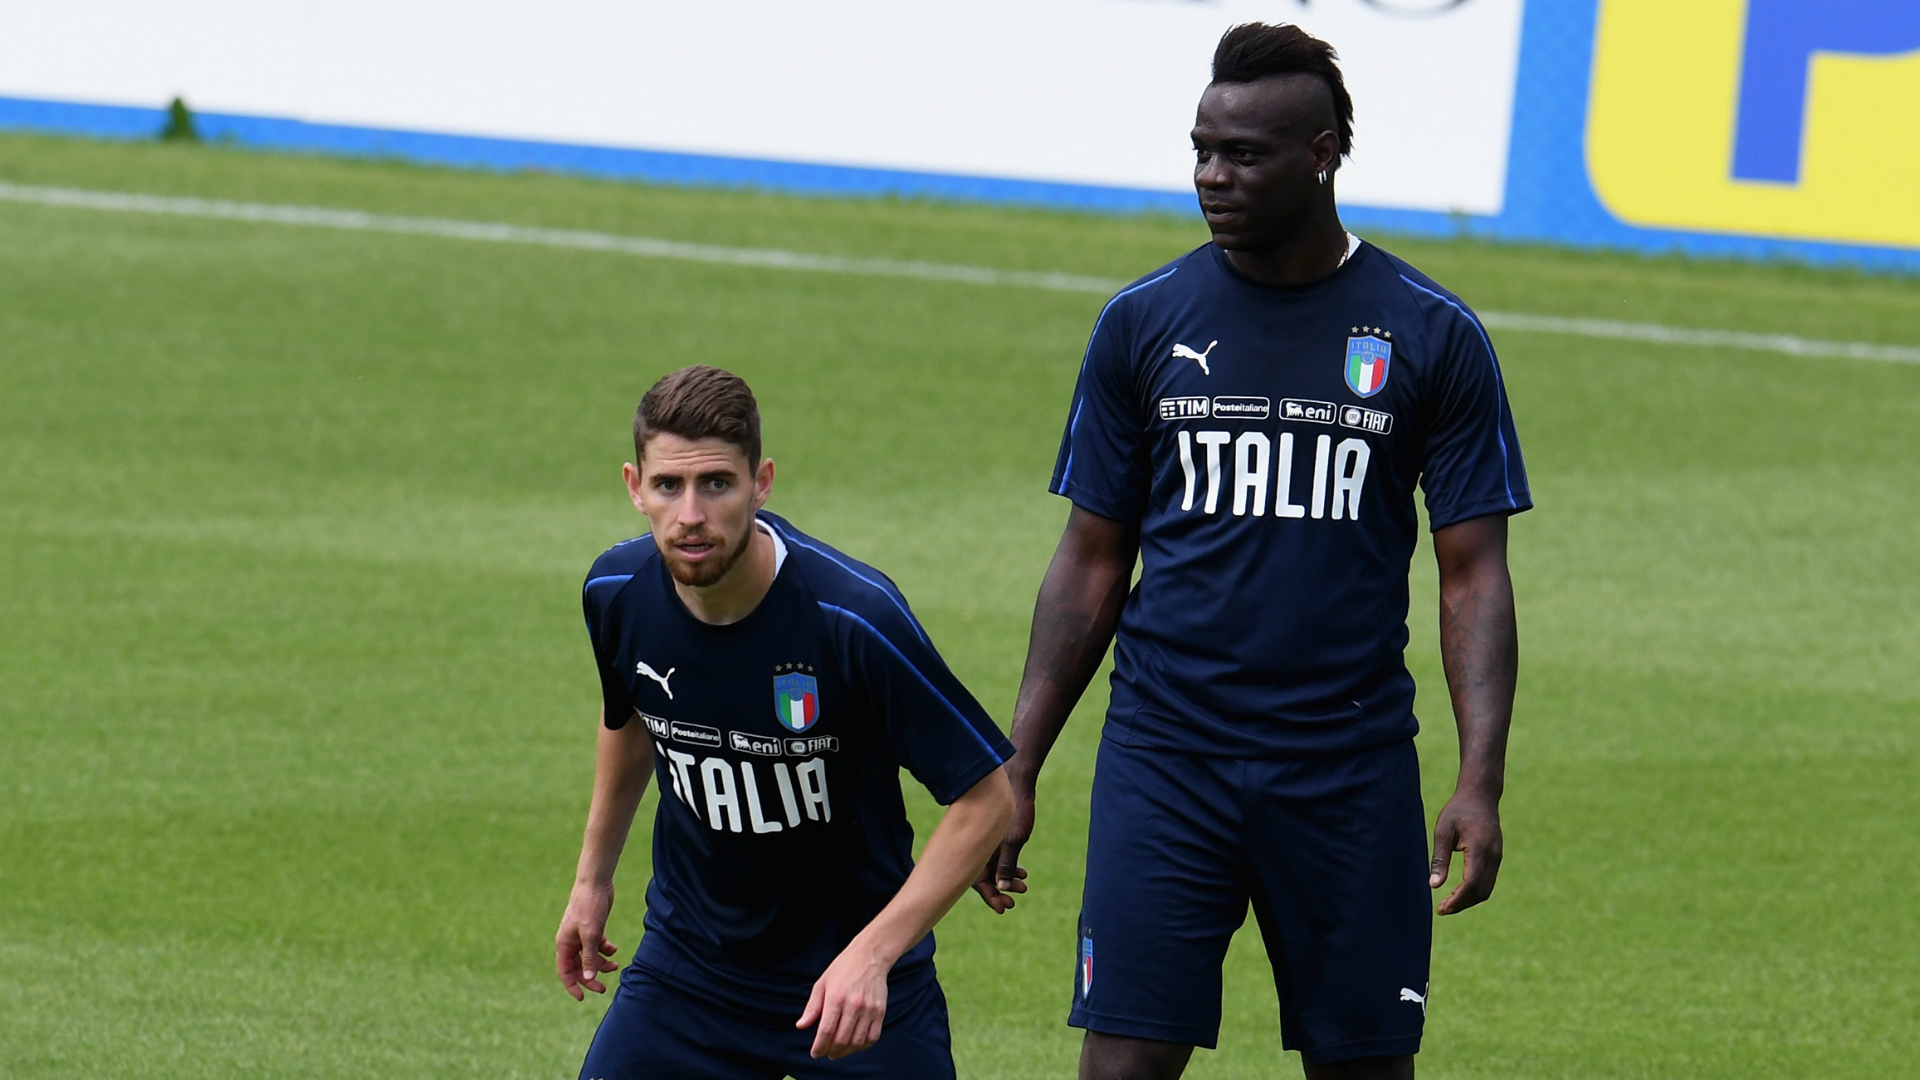 Balotelli scores in return as Italy beats Saudi Arabia in friendly